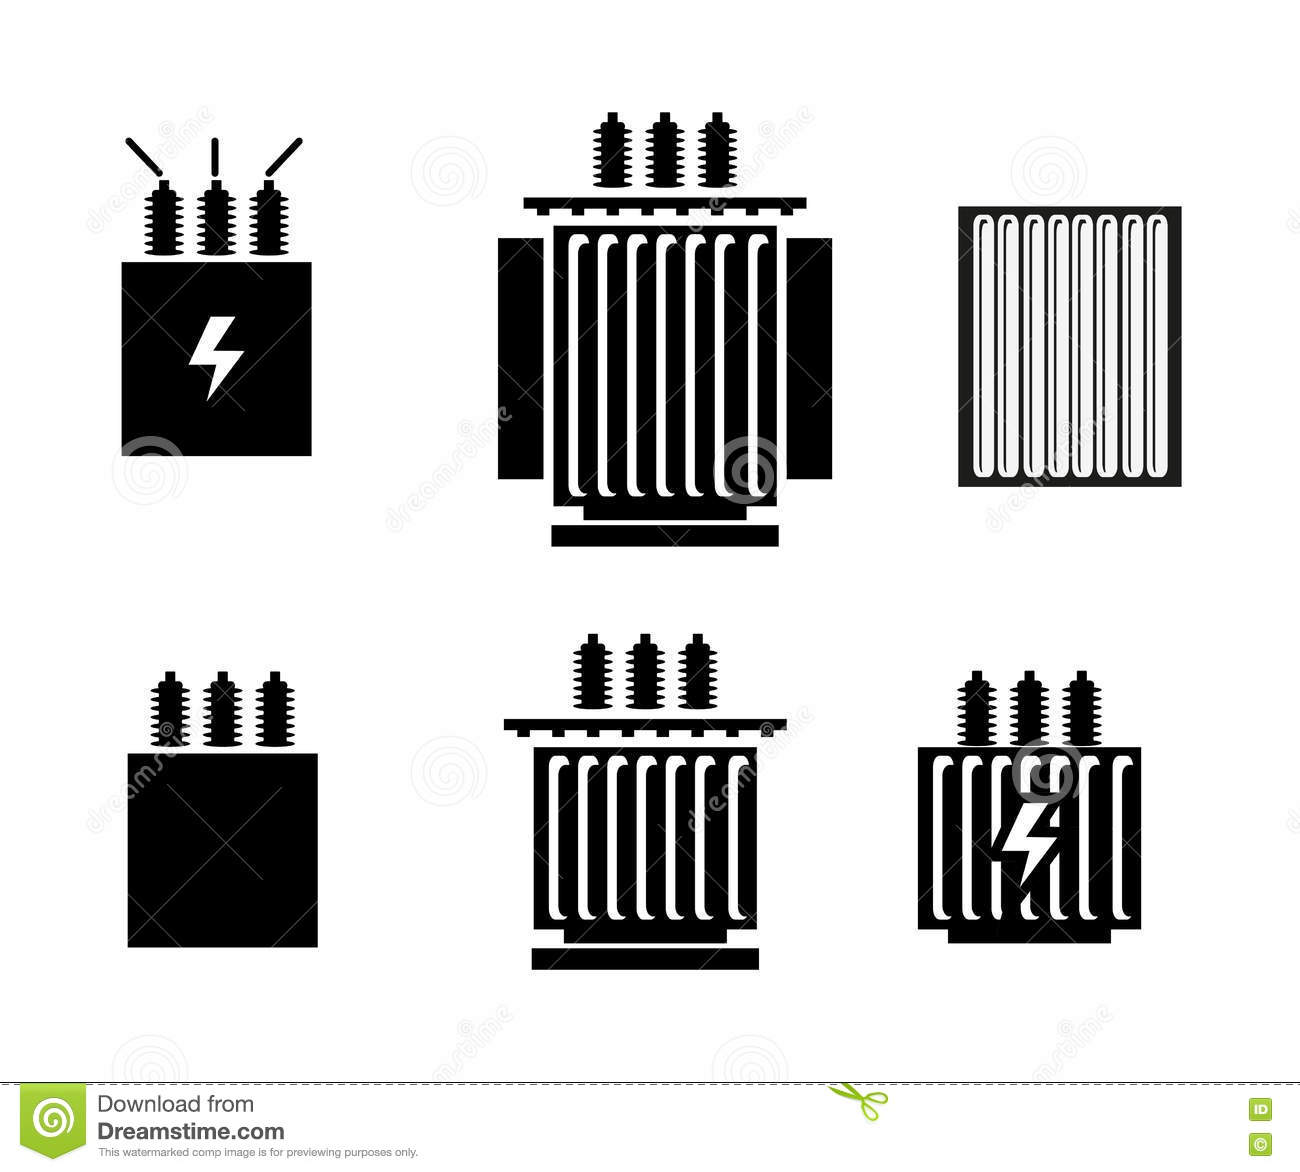 Royalty Free Stock Photography Battery Icon Set Your Design Image33218207 likewise Safety Lab further 5l quiz additionally 9g4d94 additionally 912009 Parasitic Draw Alternator Source. on l electrical symbol